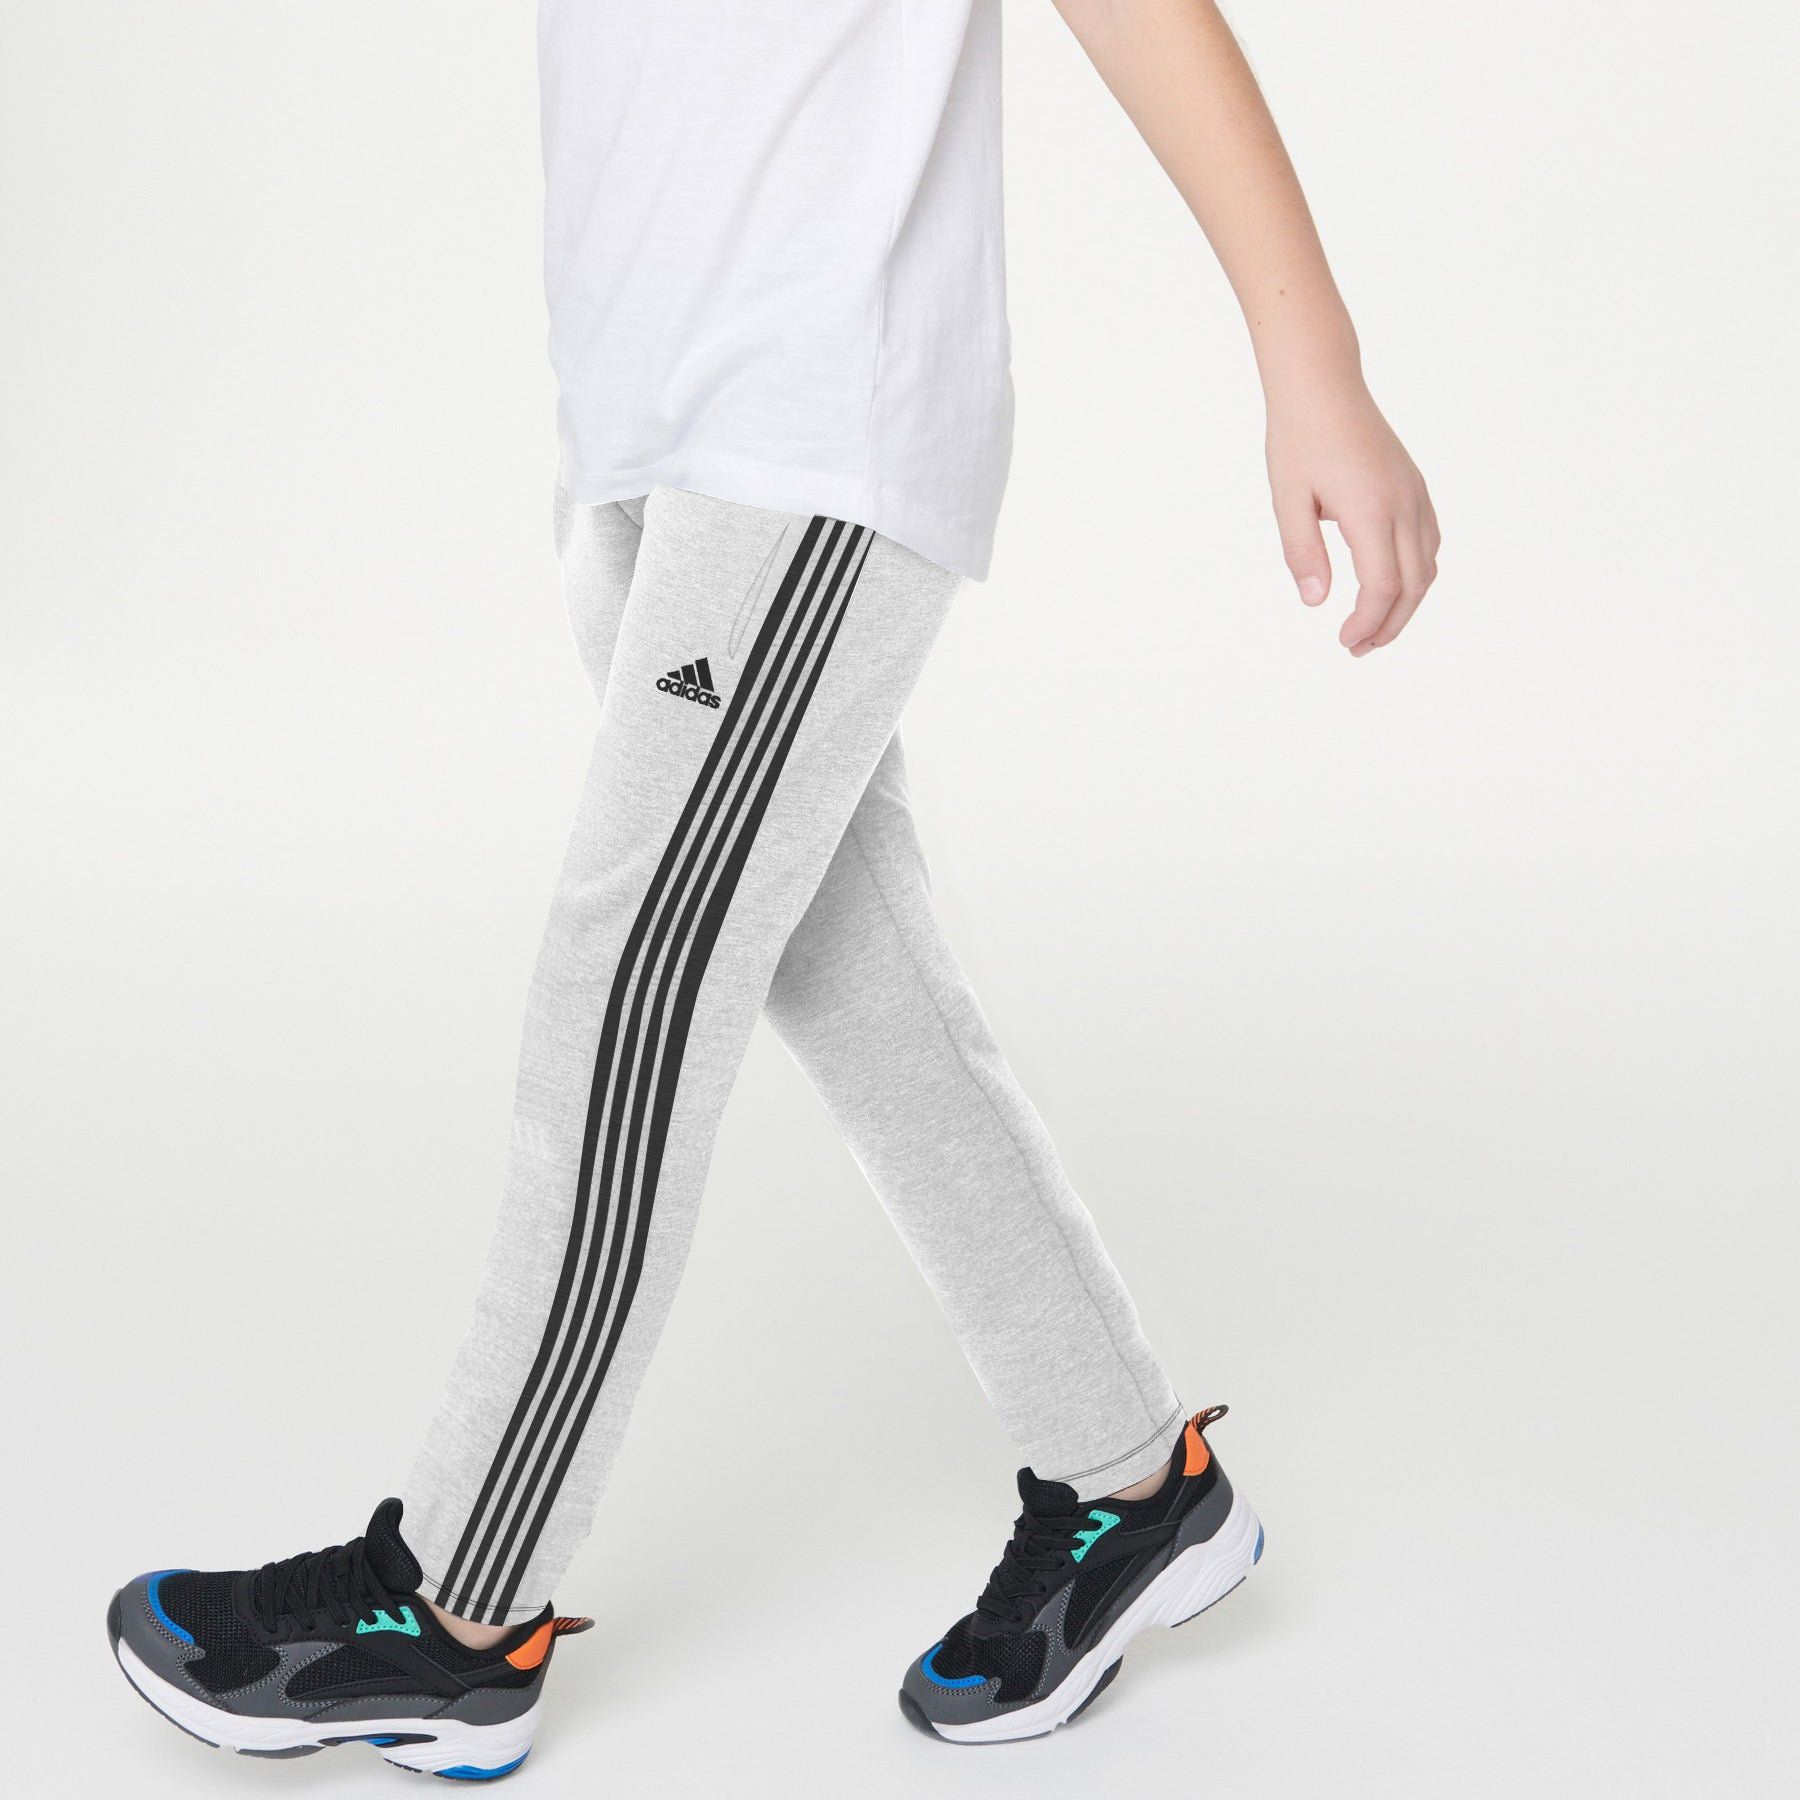 Adidas Single Jersey Jogger Trouser For Kids-Grey Melange With Stripes-BE8703